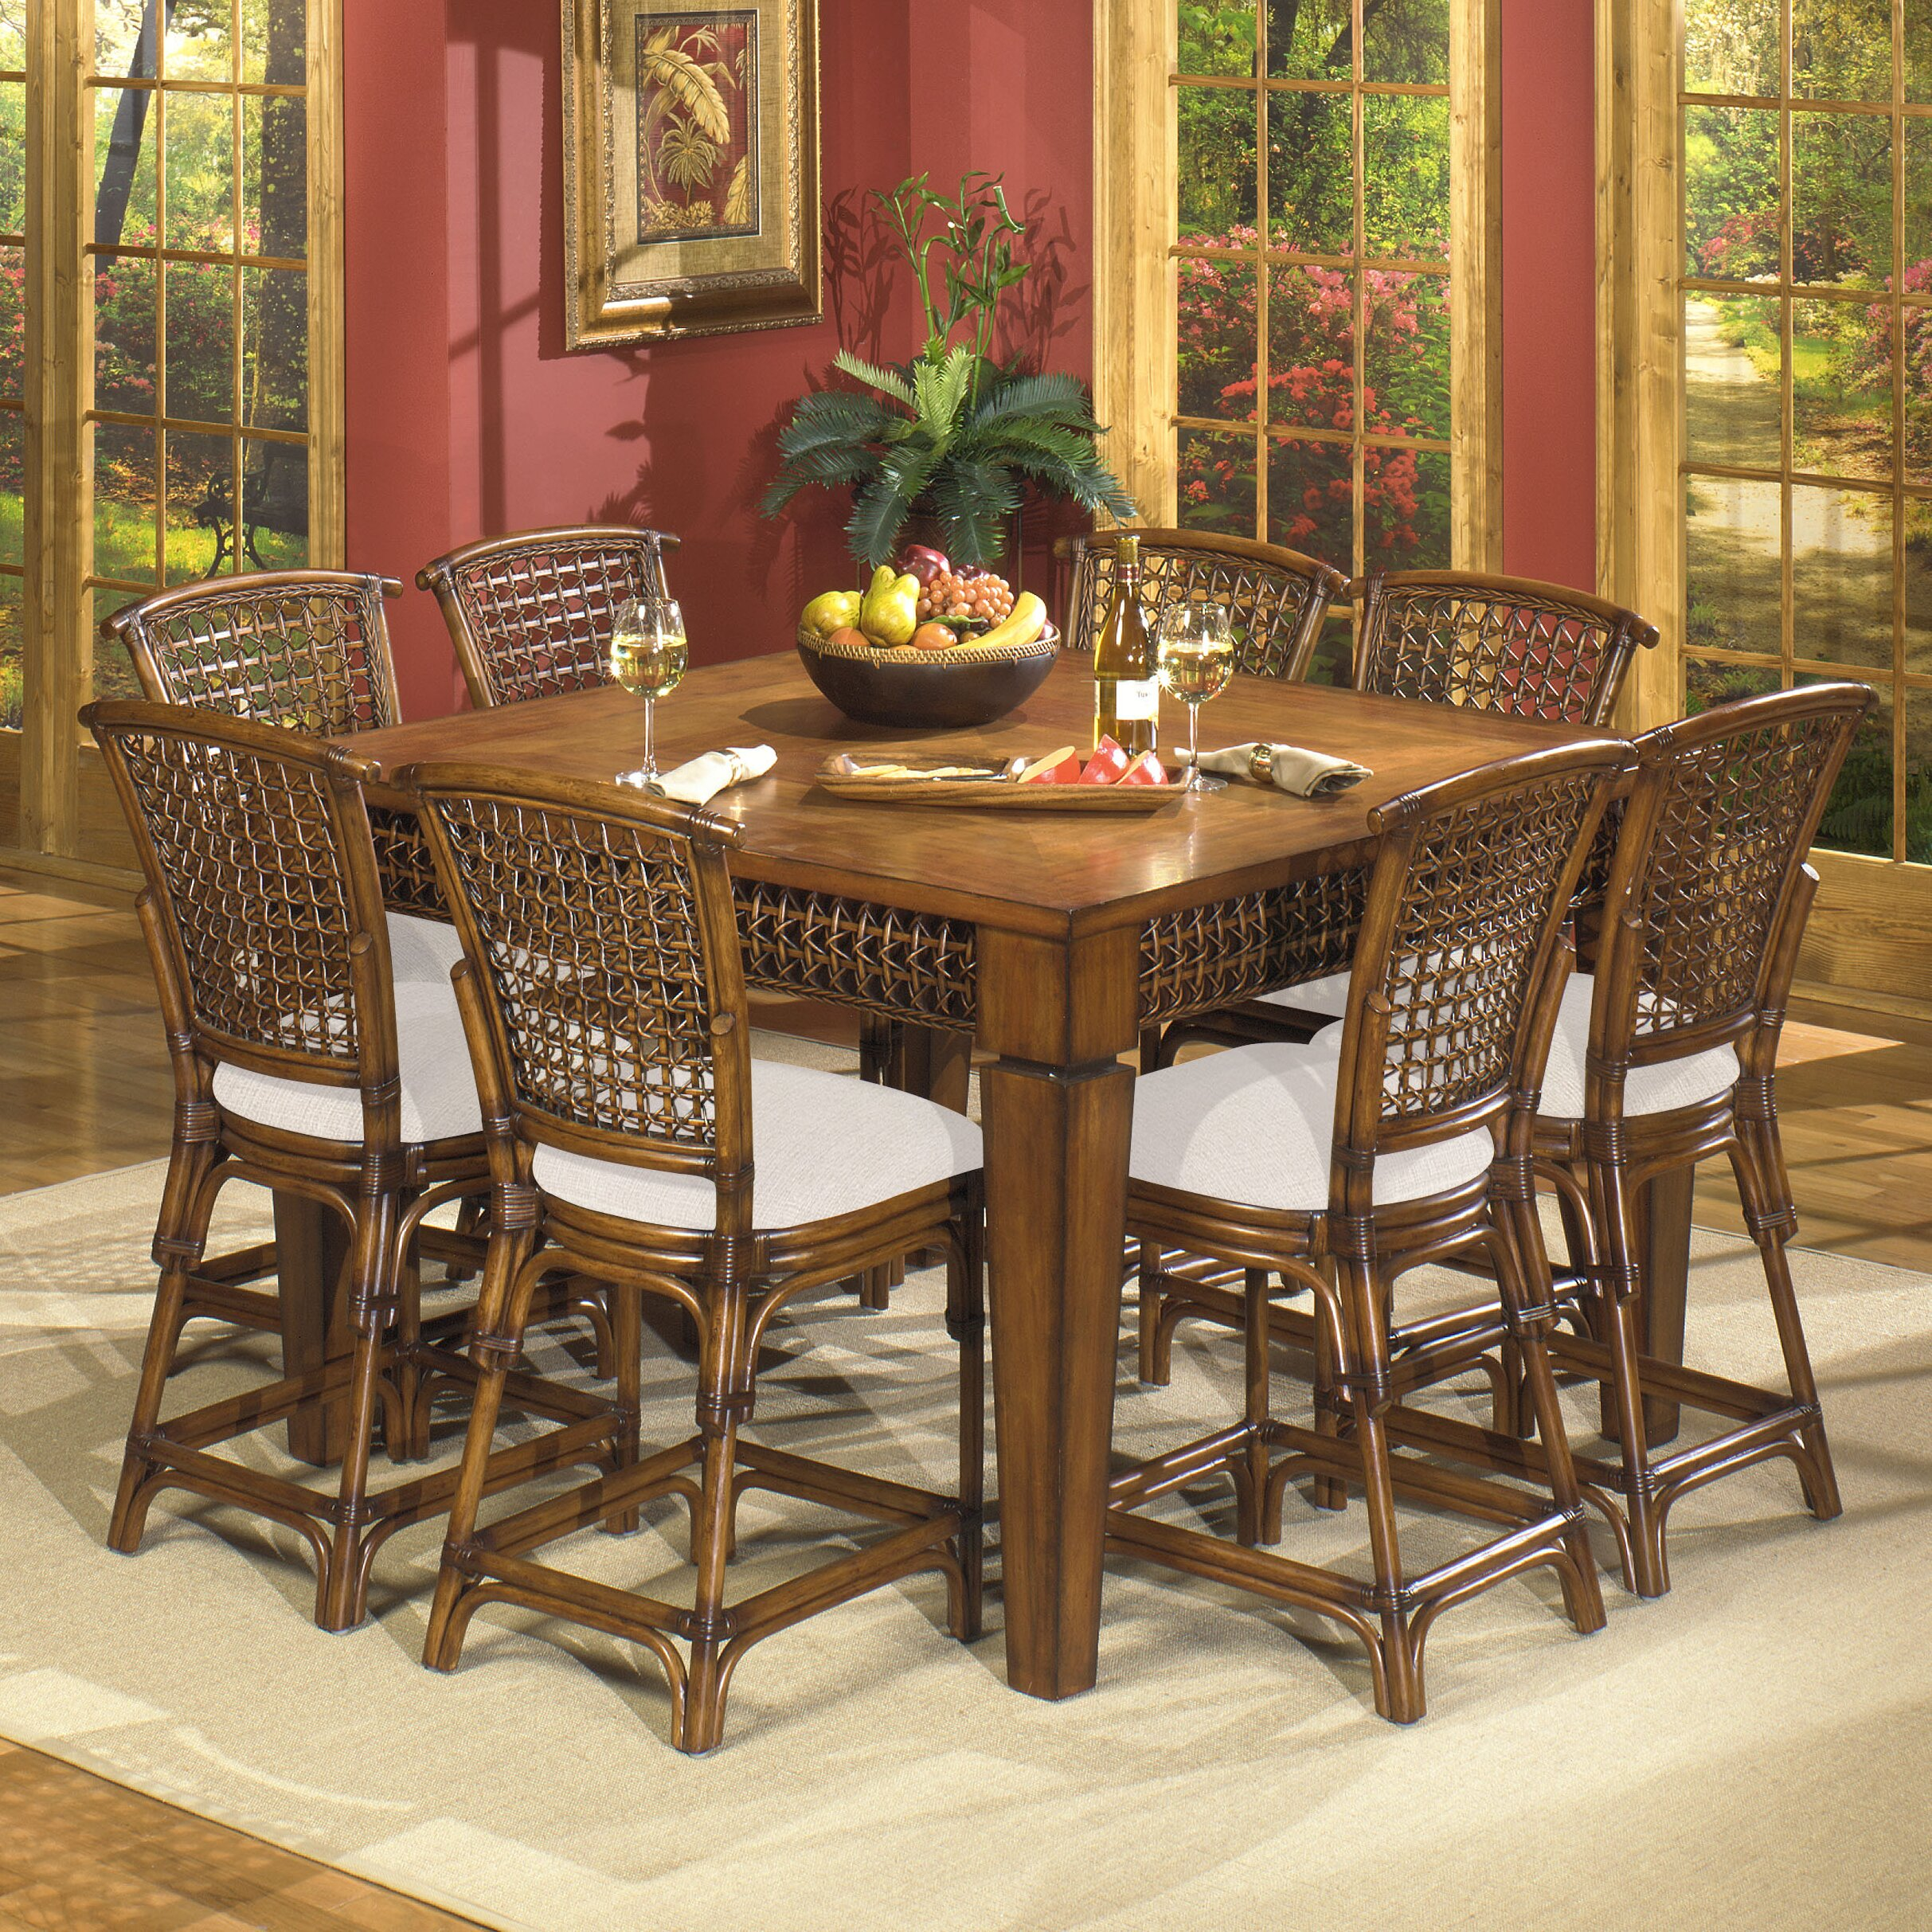 Acacia home and garden fiji gathering dining table wayfair for Table queens acacia